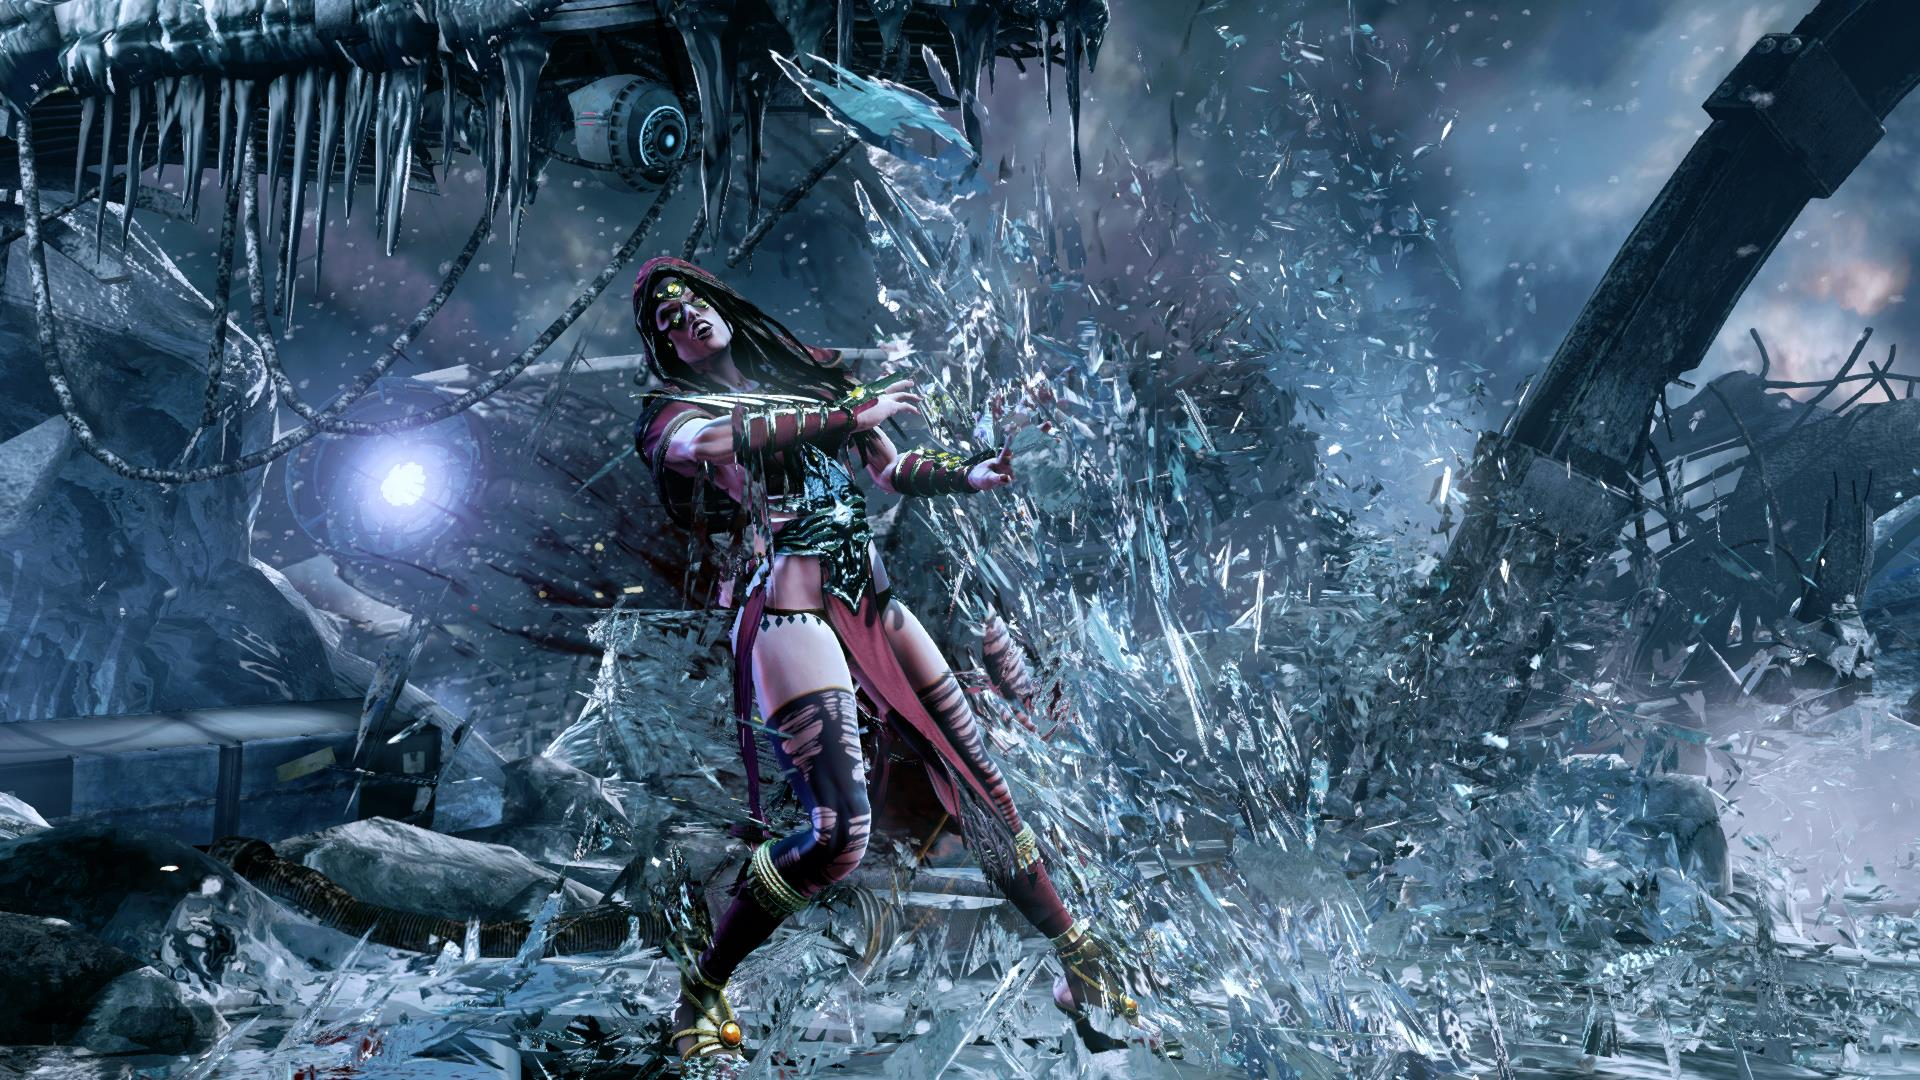 Hyper Trials! in Killer Instinct